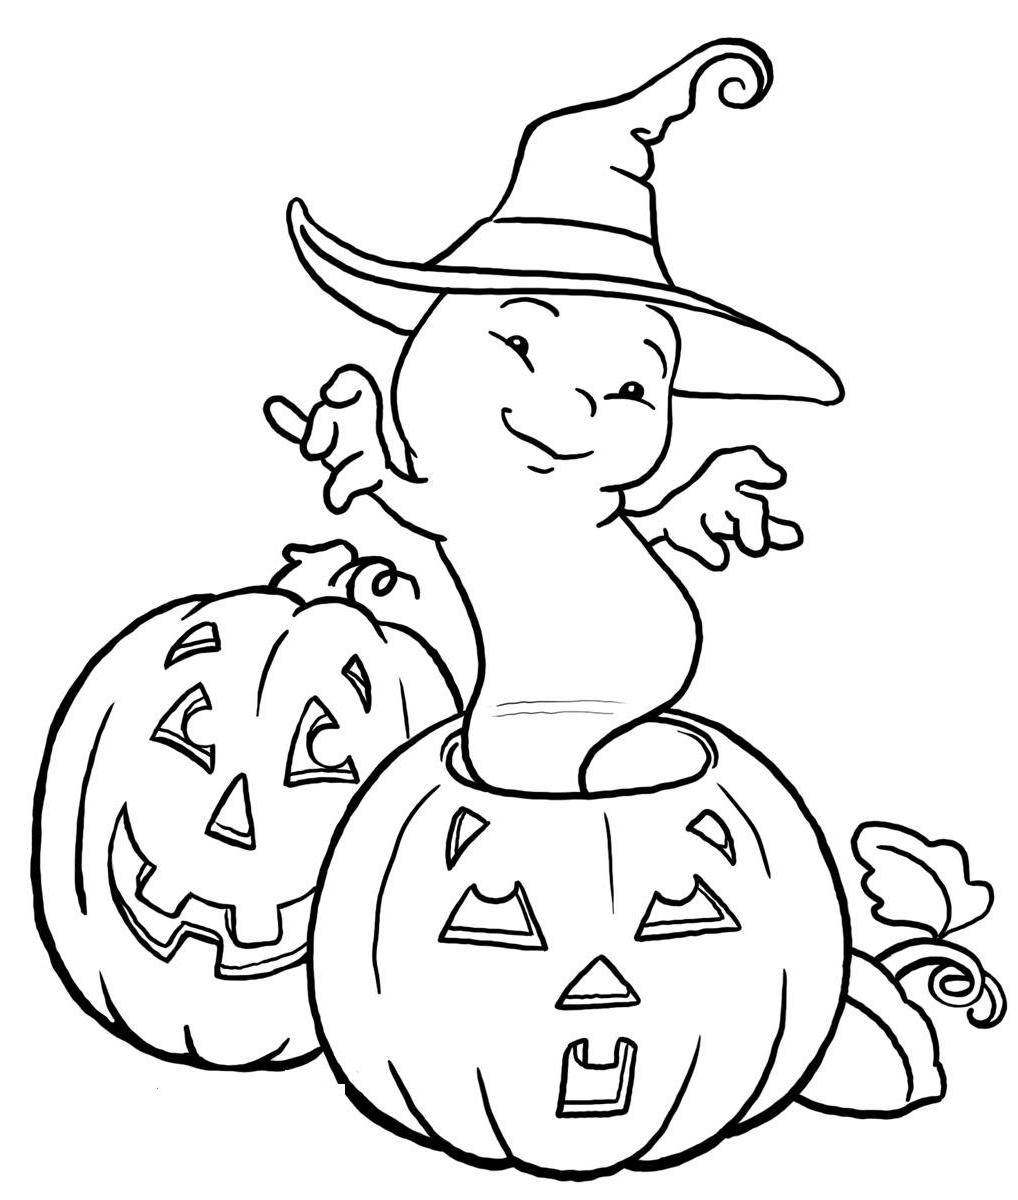 Drawn ghostly halloween coloring And Pages: coloring Halloween pages